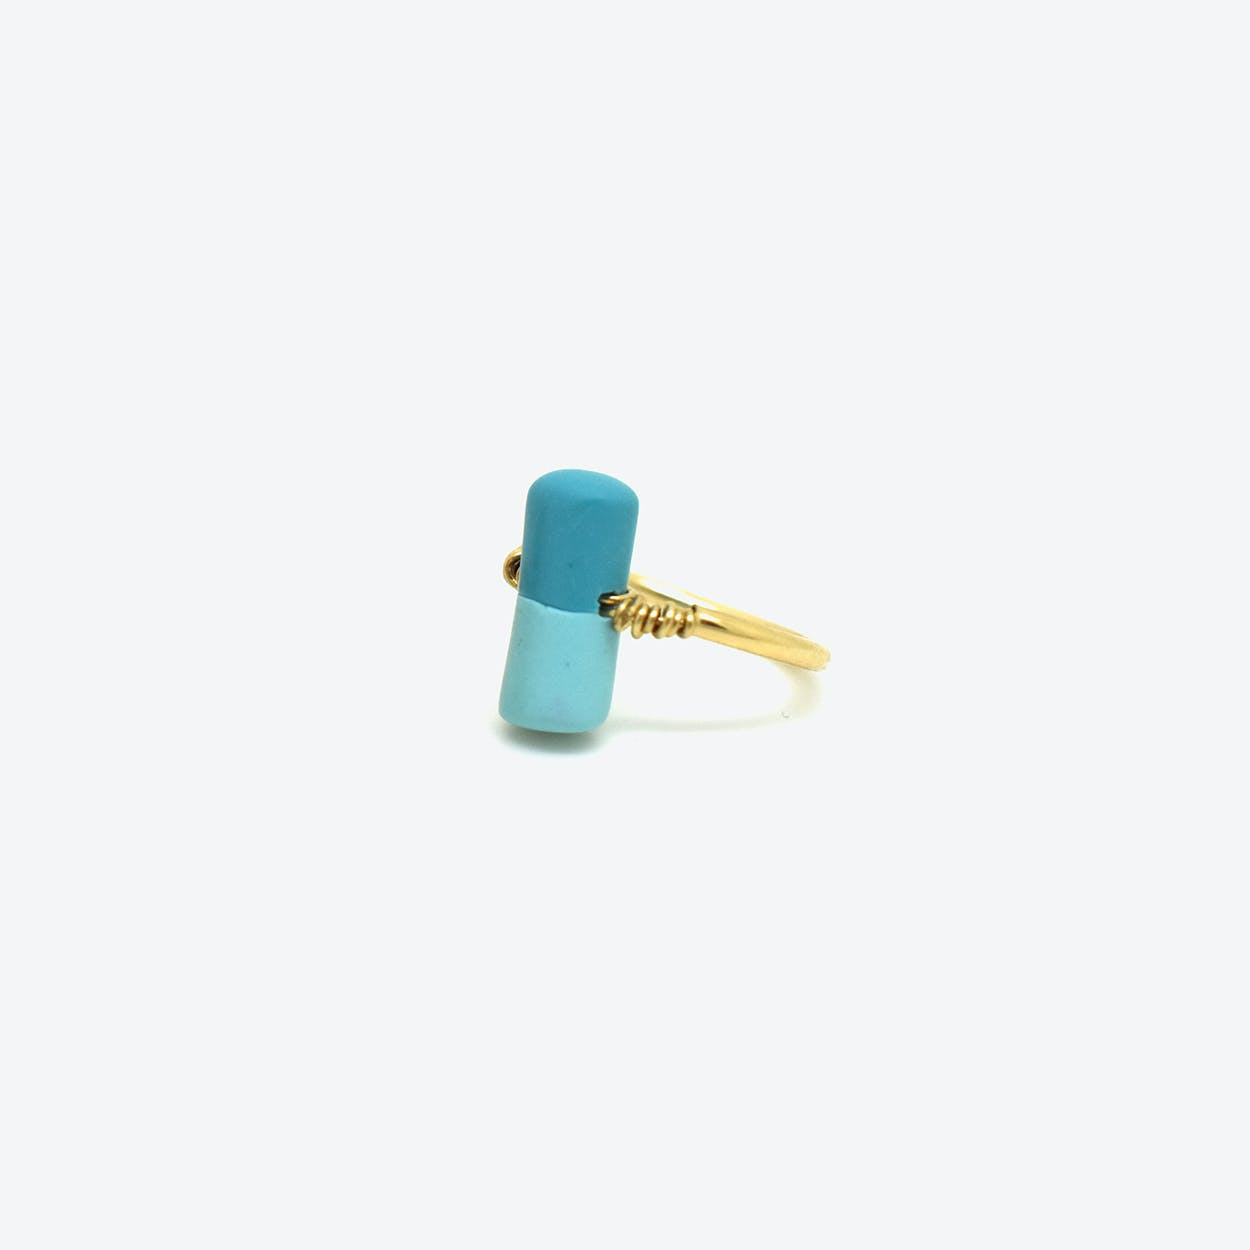 Pain Killer Ring - Turquoise